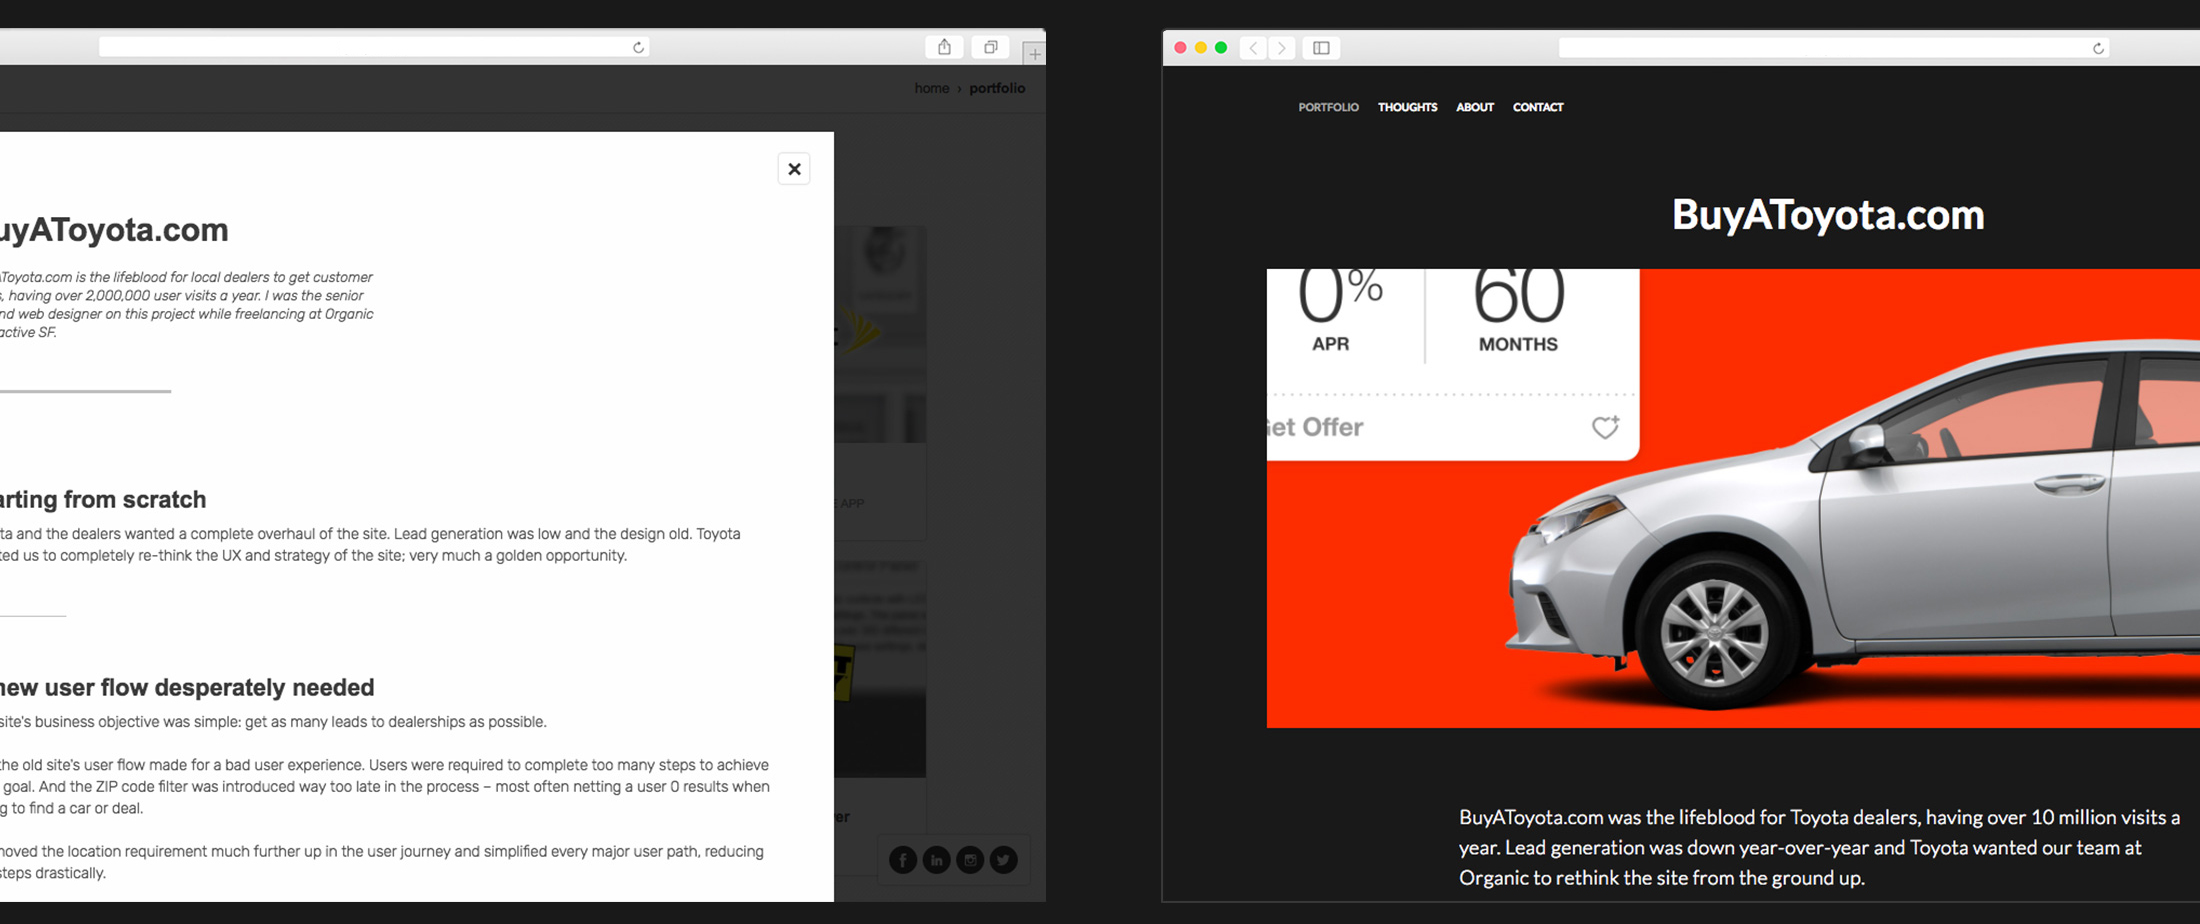 Image of my old site compared to the new one